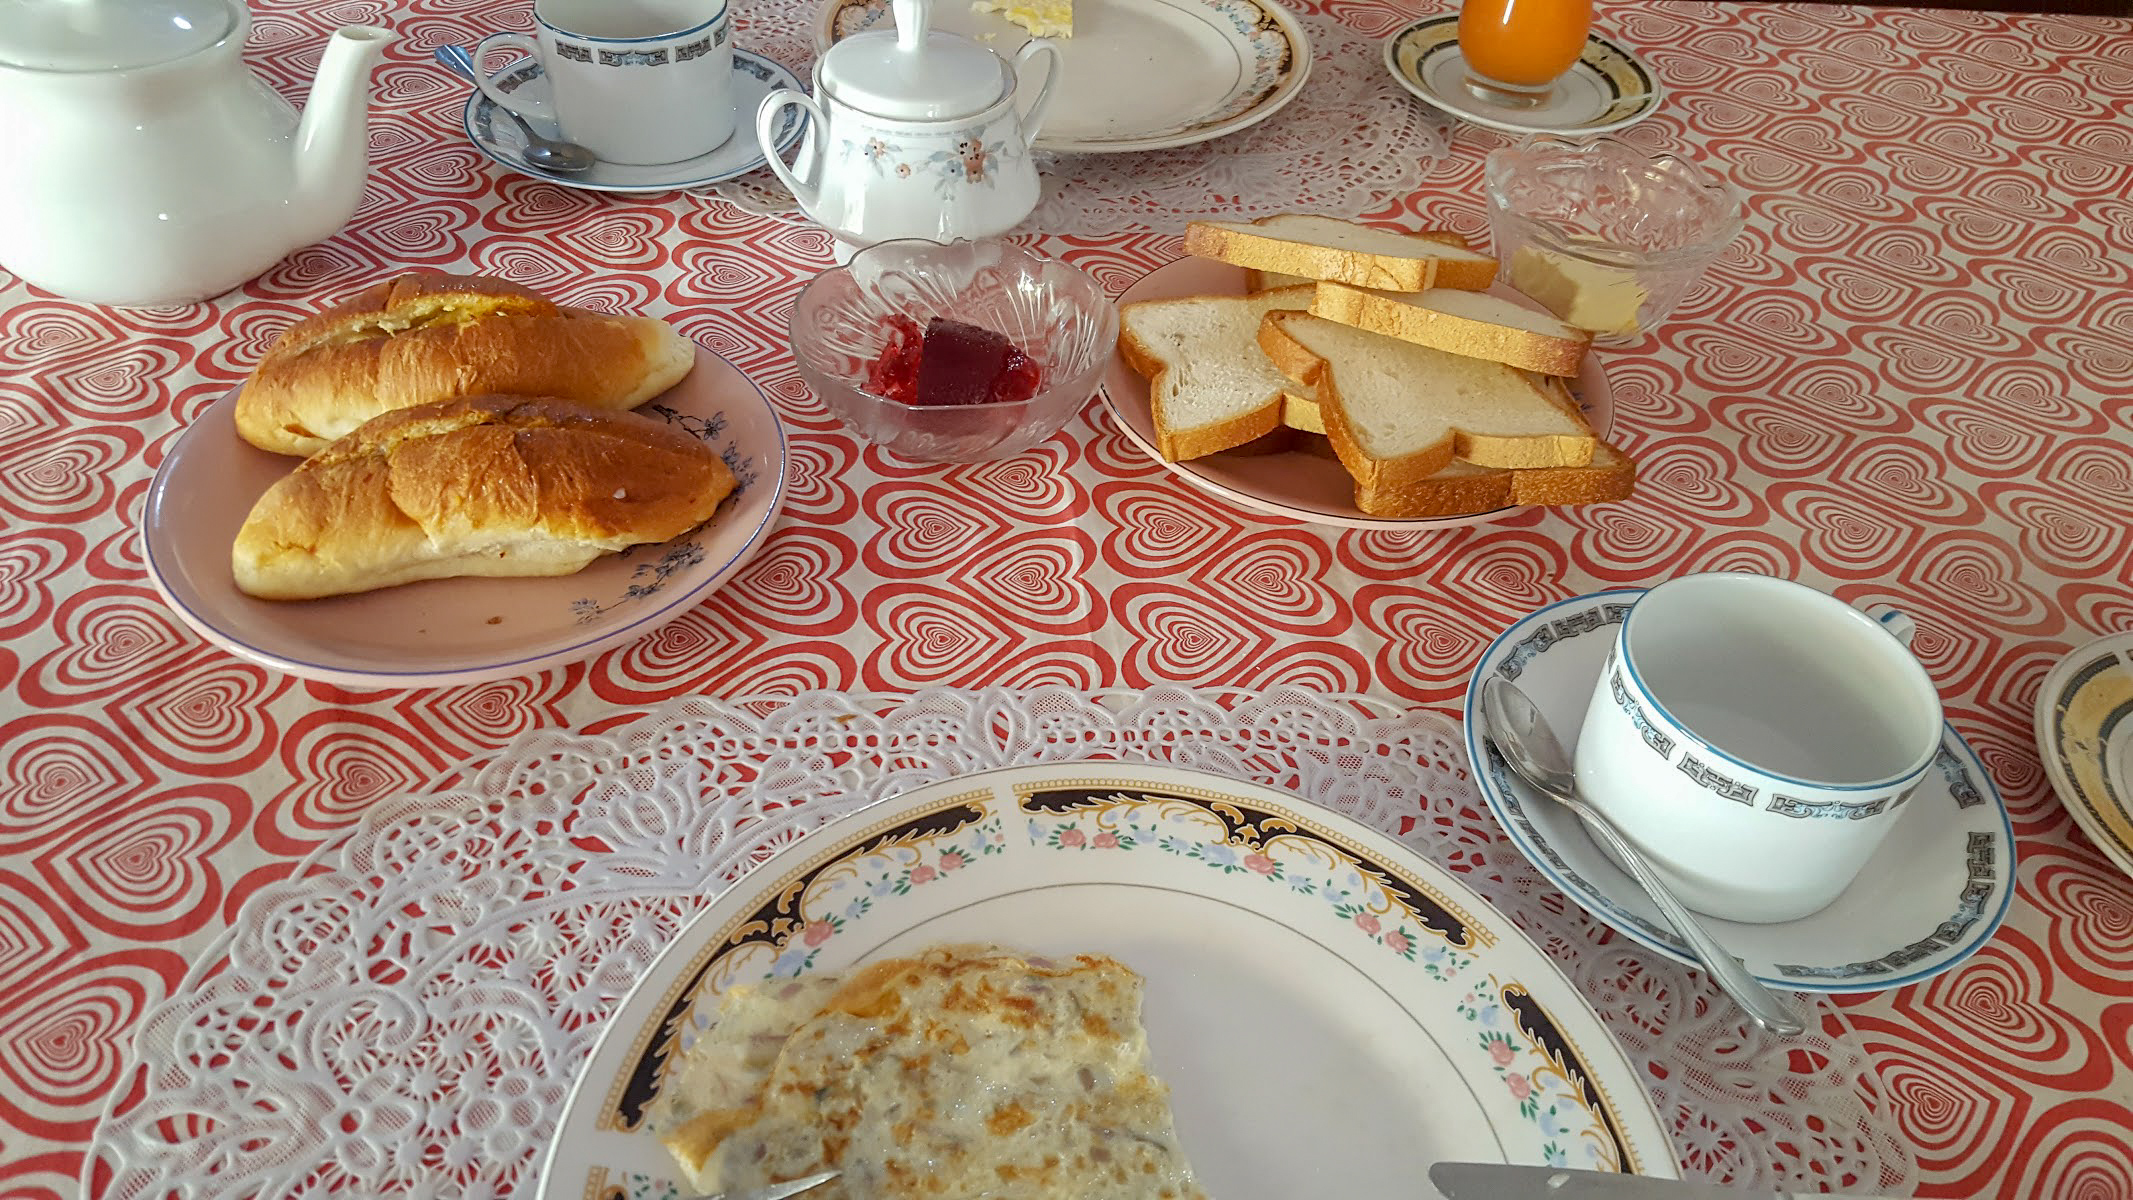 breakfast of toast, omlette and rolls on a red love heart tablecloth